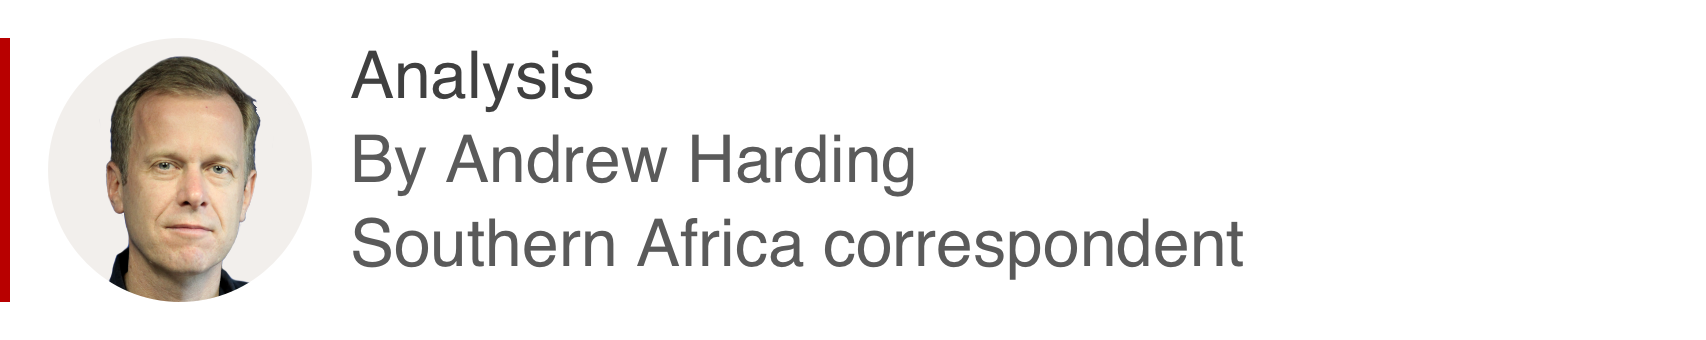 Analysis box by Andrew Harding, southern Africa correspondent